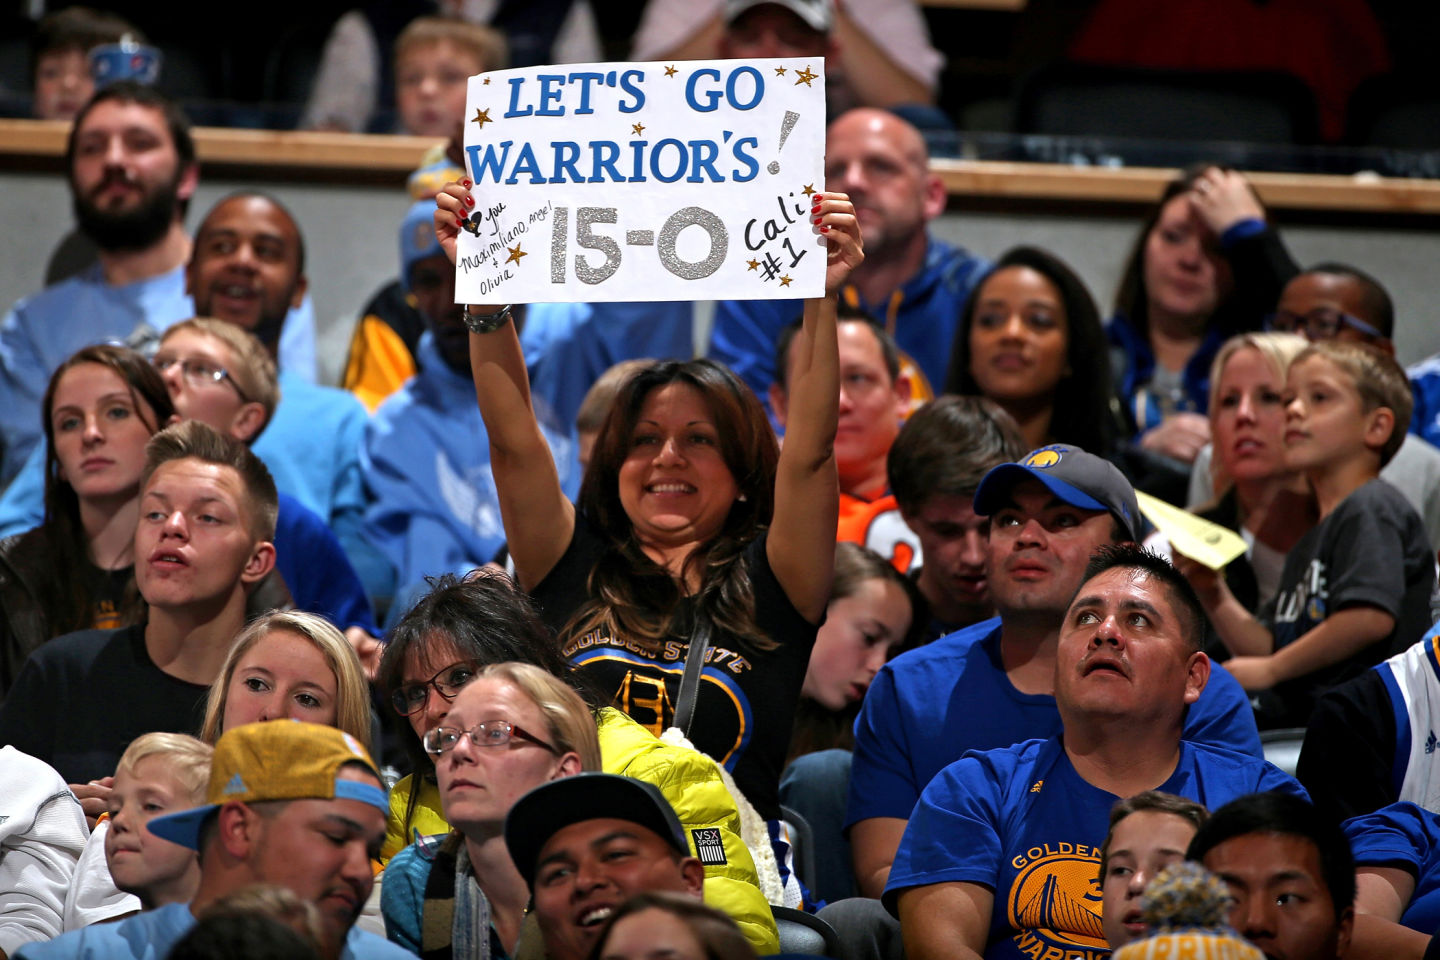 Fans celebrate the Golden State Warriors 15-0 season start with their 118-105 victory over the Denver Nuggets. (Doug Pensinger/Getty Images)